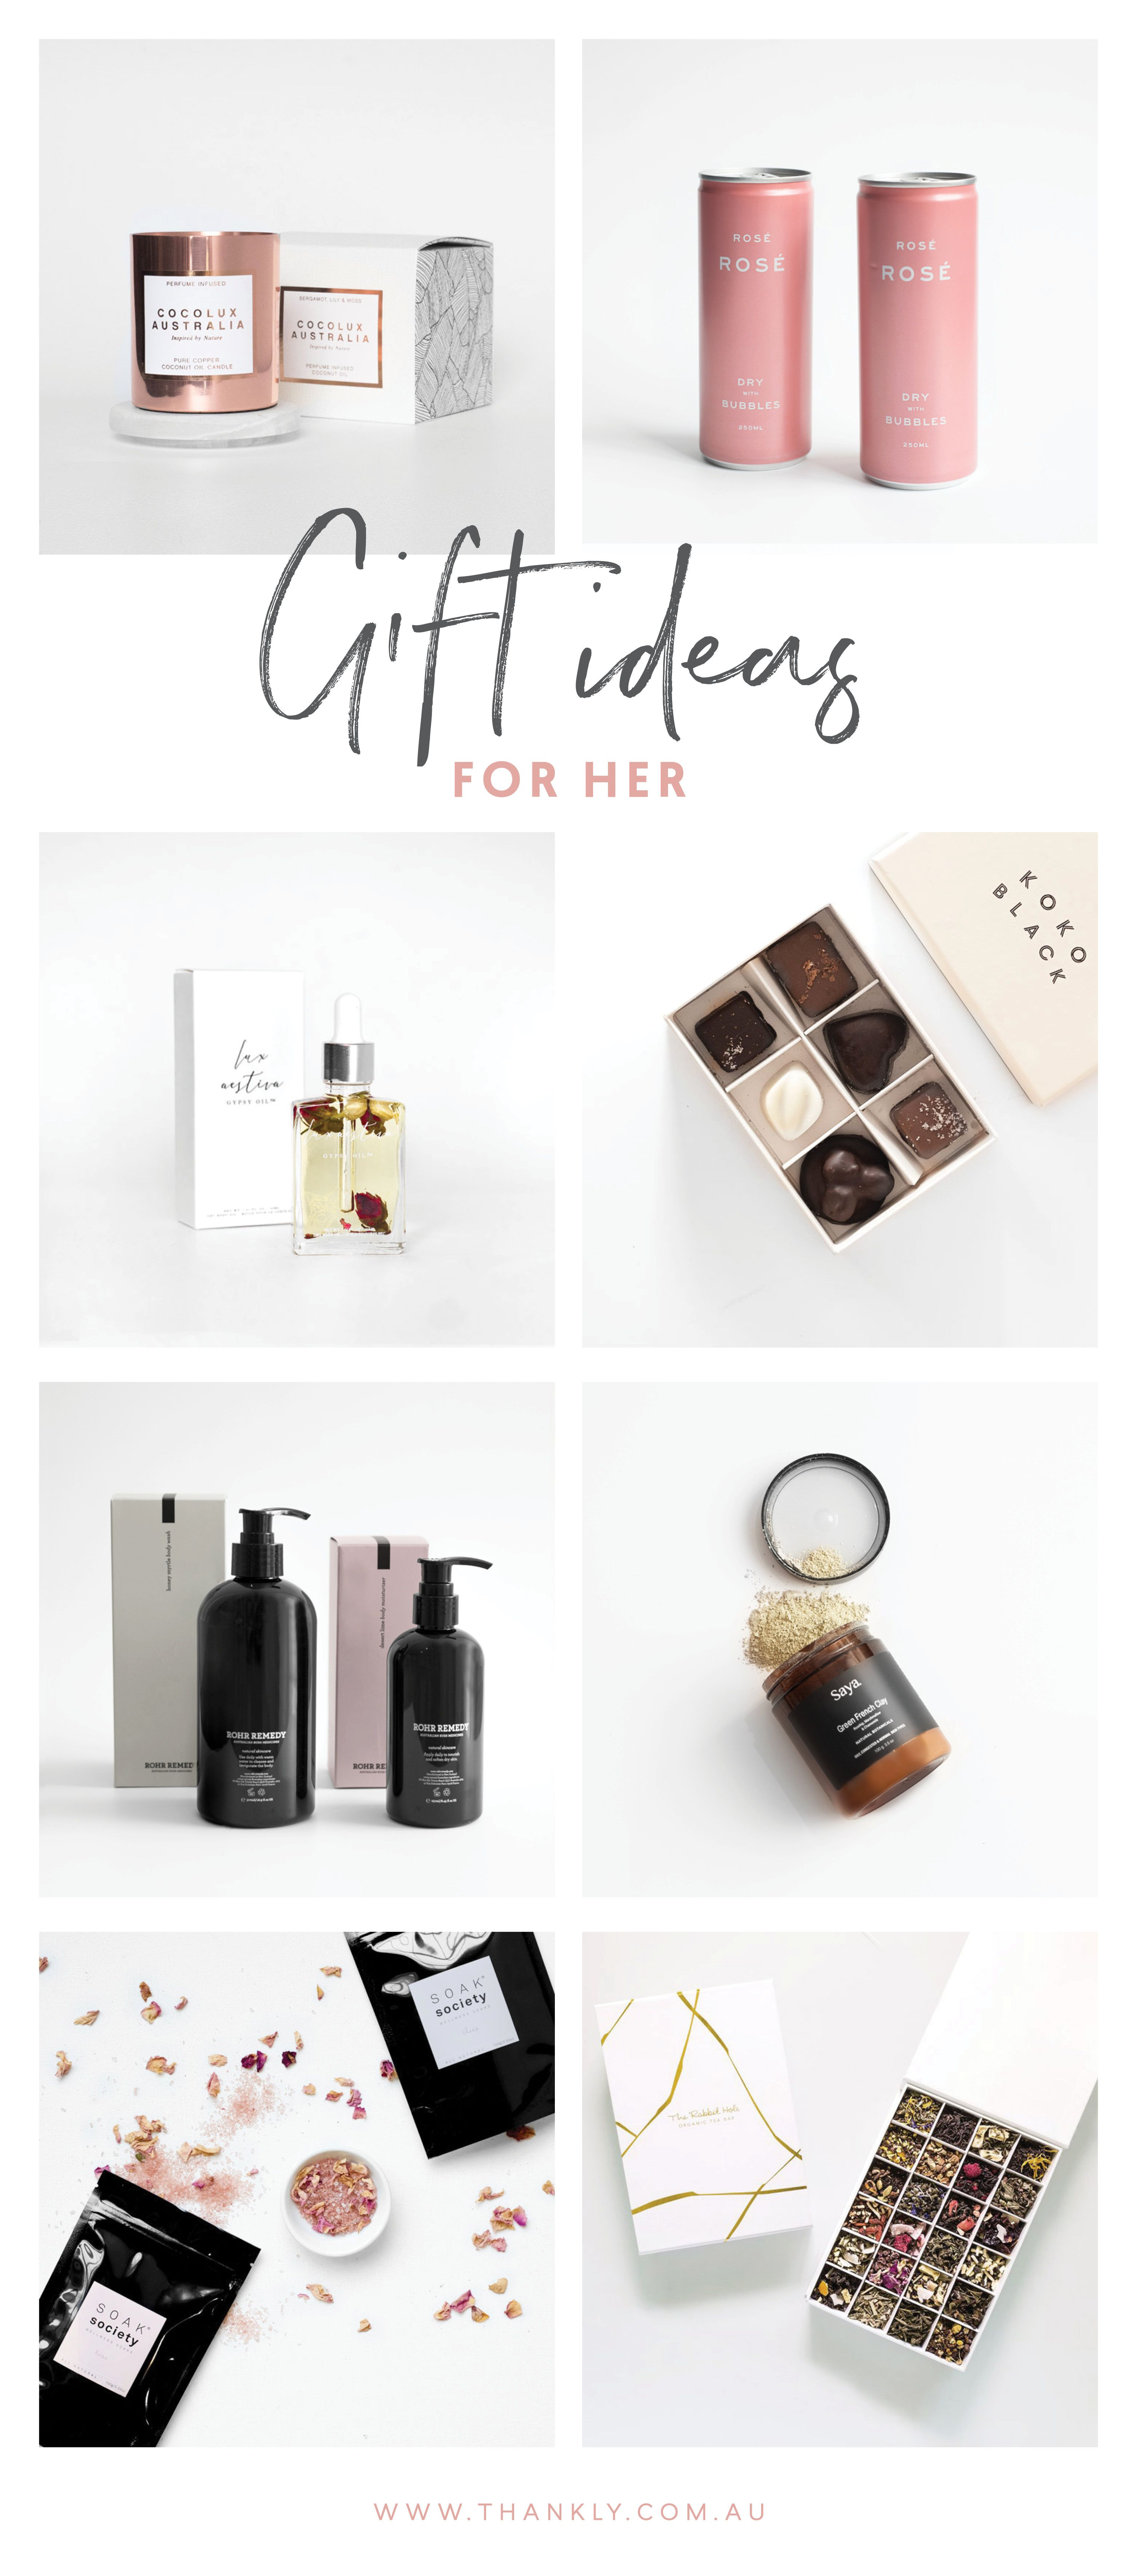 Send A Thoughtful Gift To Pamper Your Girlfriend Say Happy Birthday Best Friend Or Show Mum